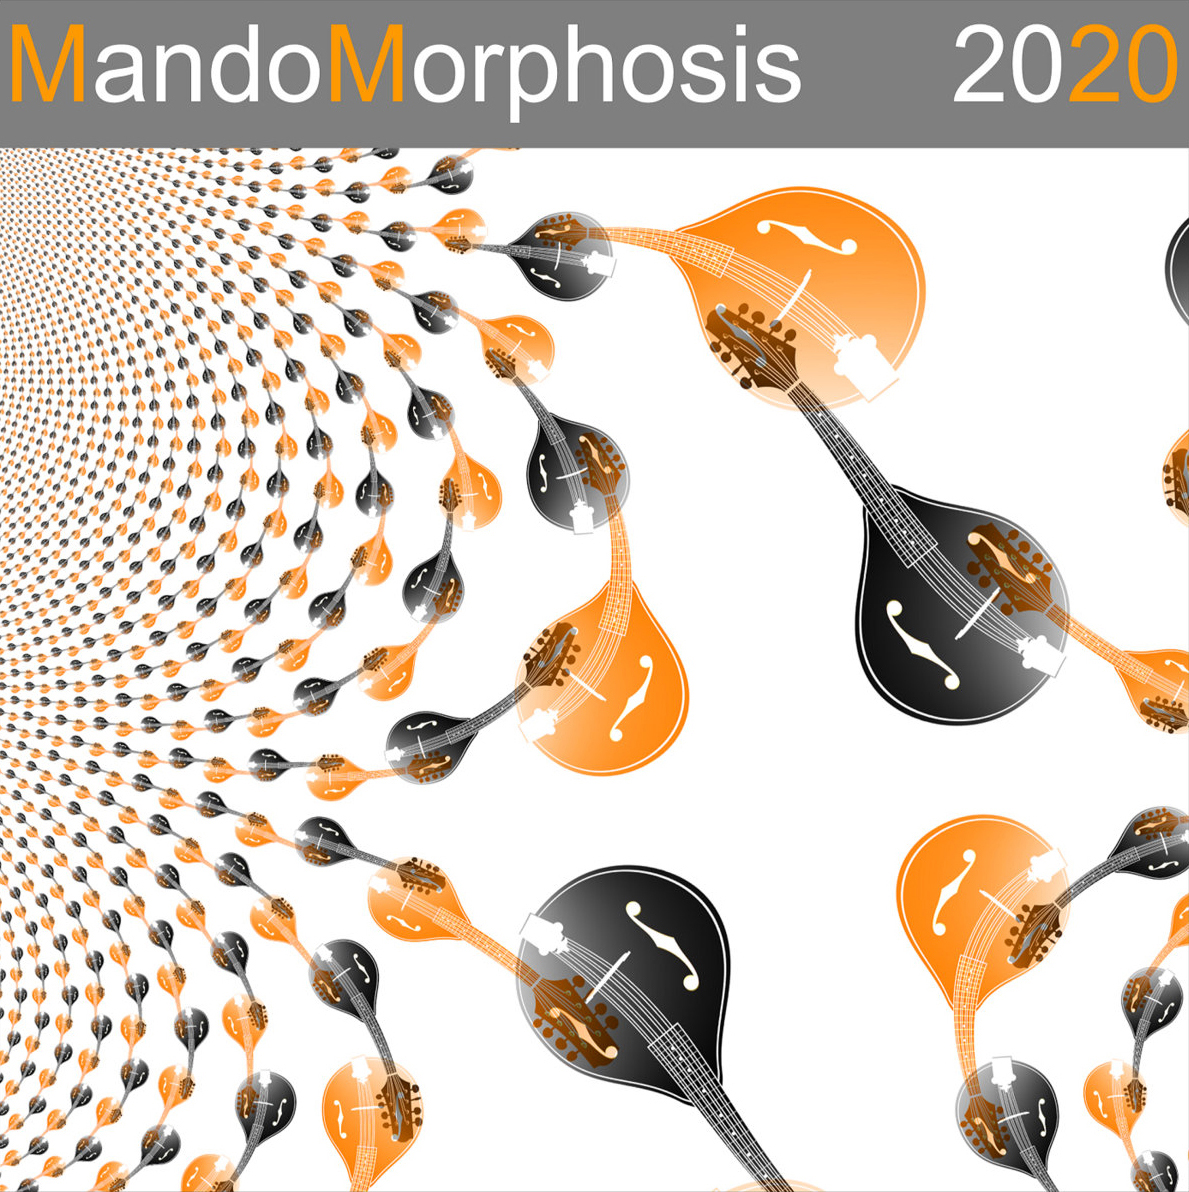 MandoMorphosis - 2020